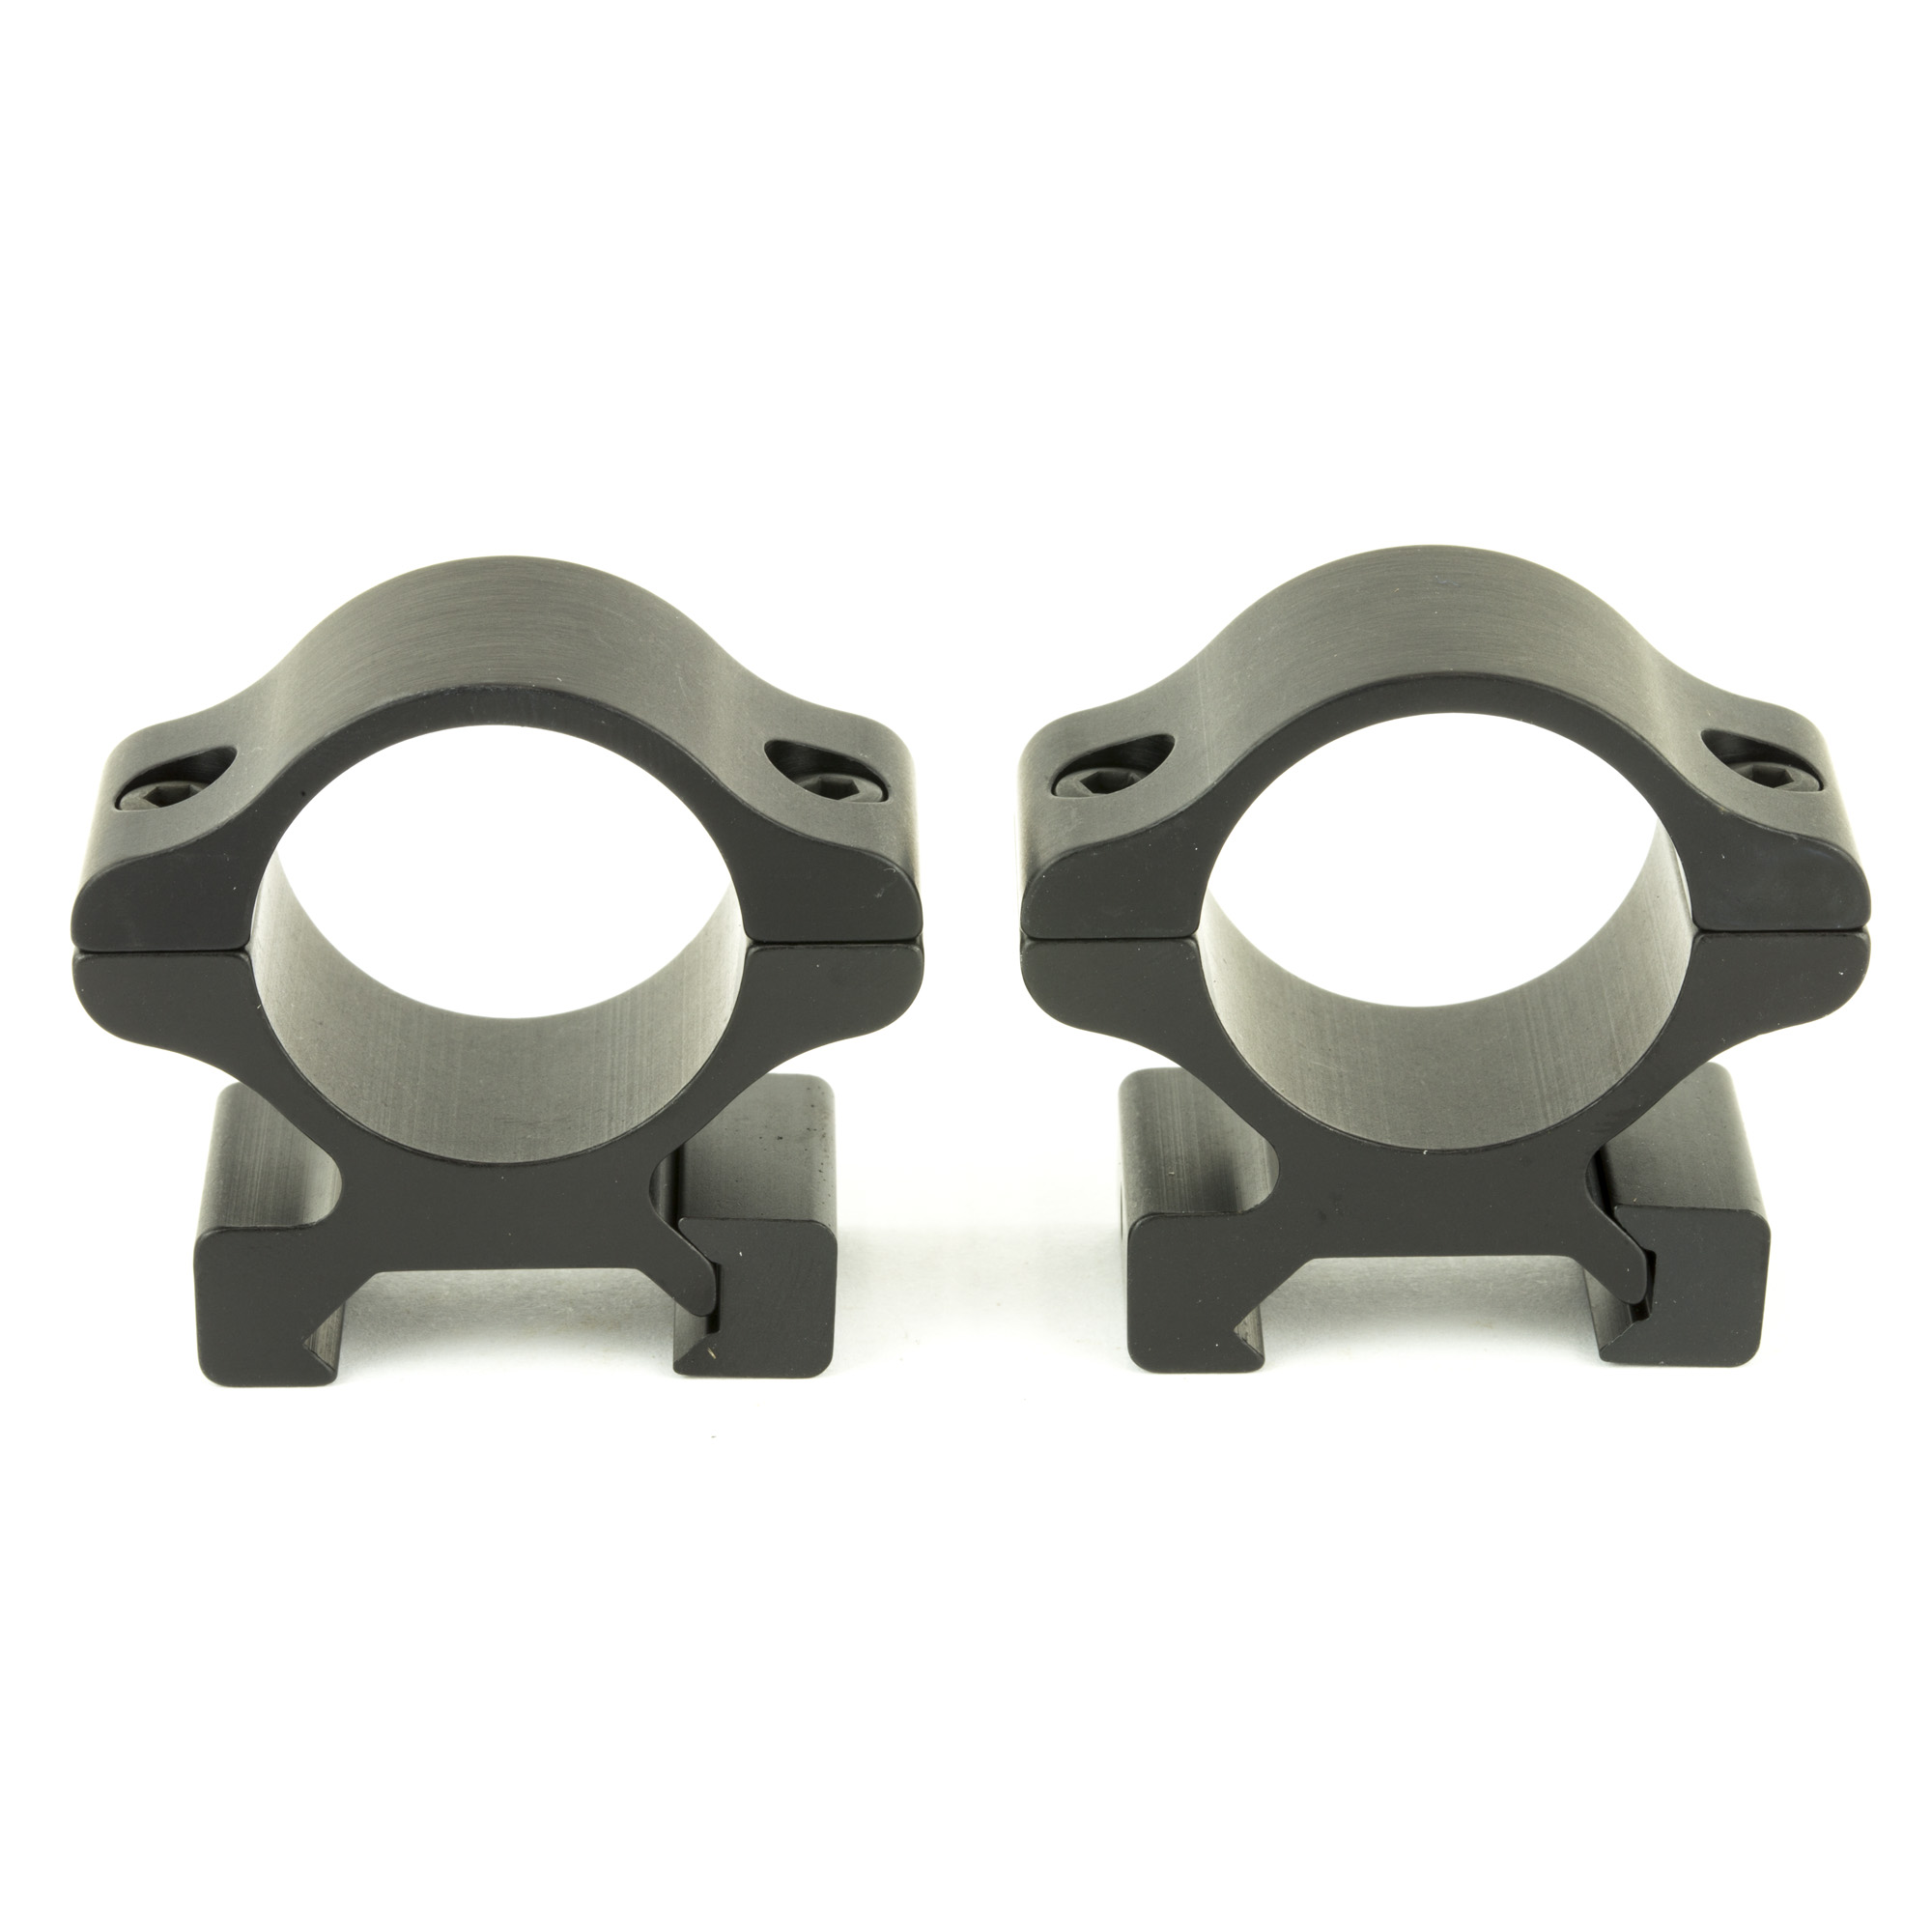 "Extremely affordable and exceptionally well-made"" Leupold's Rifleman mounts are precision machined from aircraft-grade aluminum for exceptional strength and lighter weight."